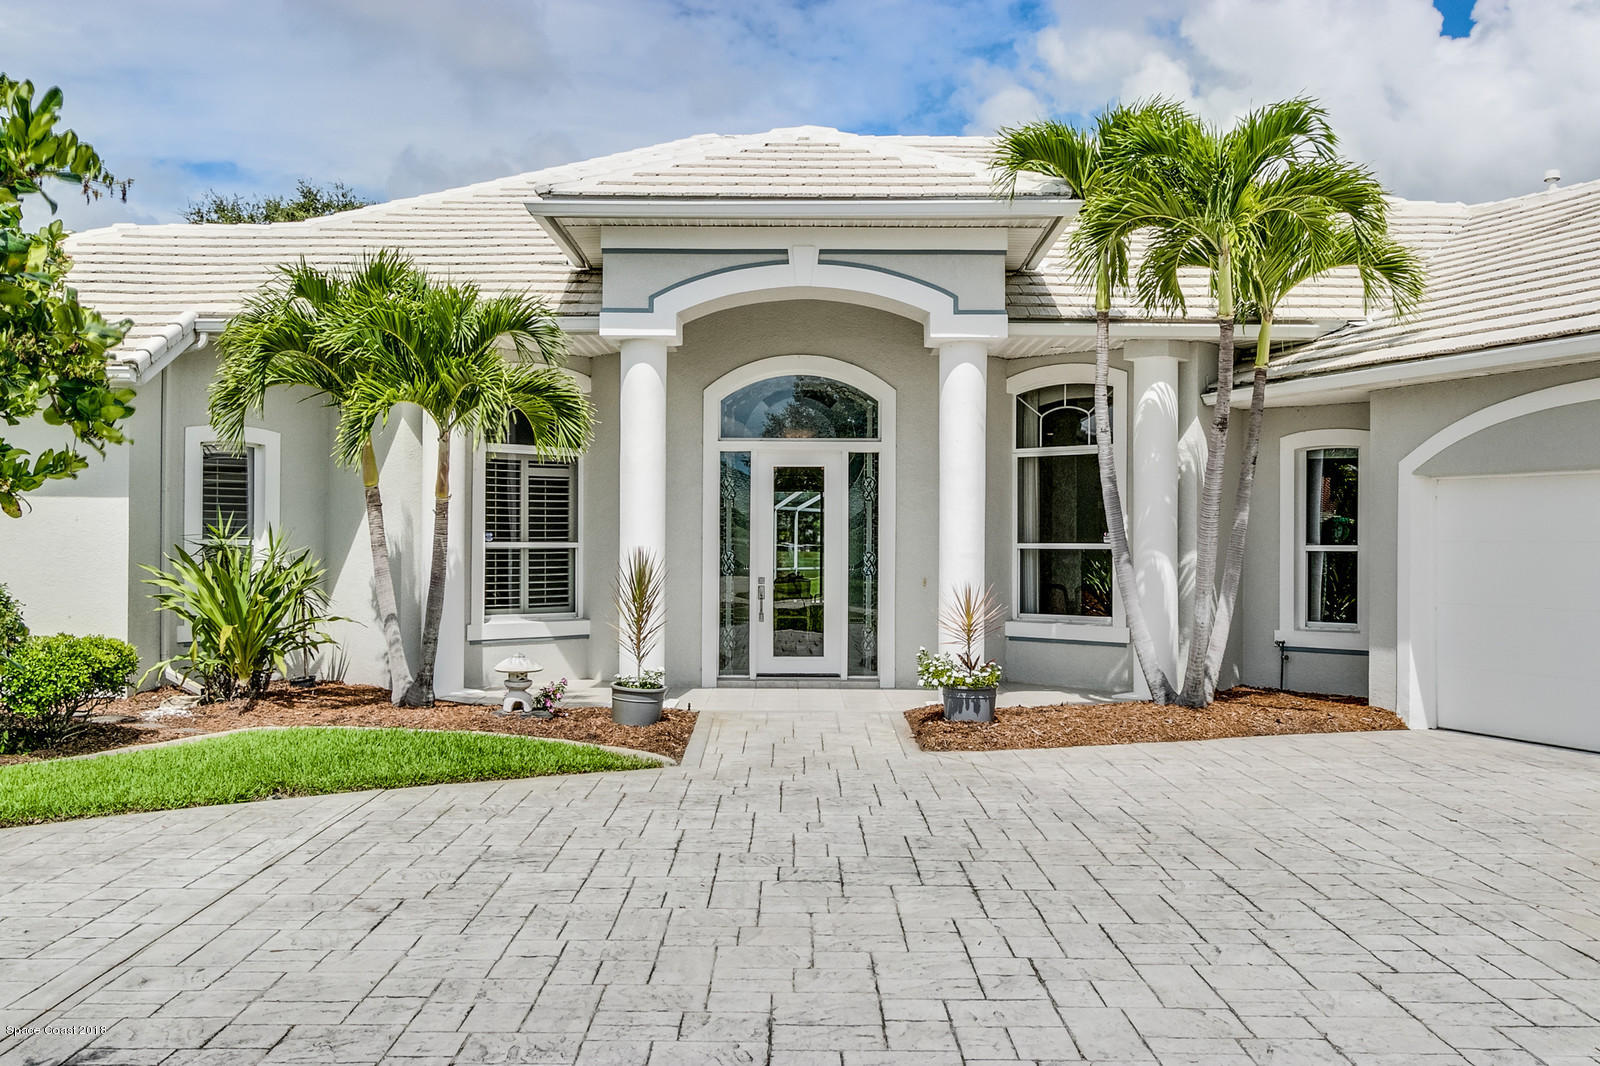 Single Family Home for Sale at 720 Nicklaus 720 Nicklaus Melbourne, Florida 32940 United States